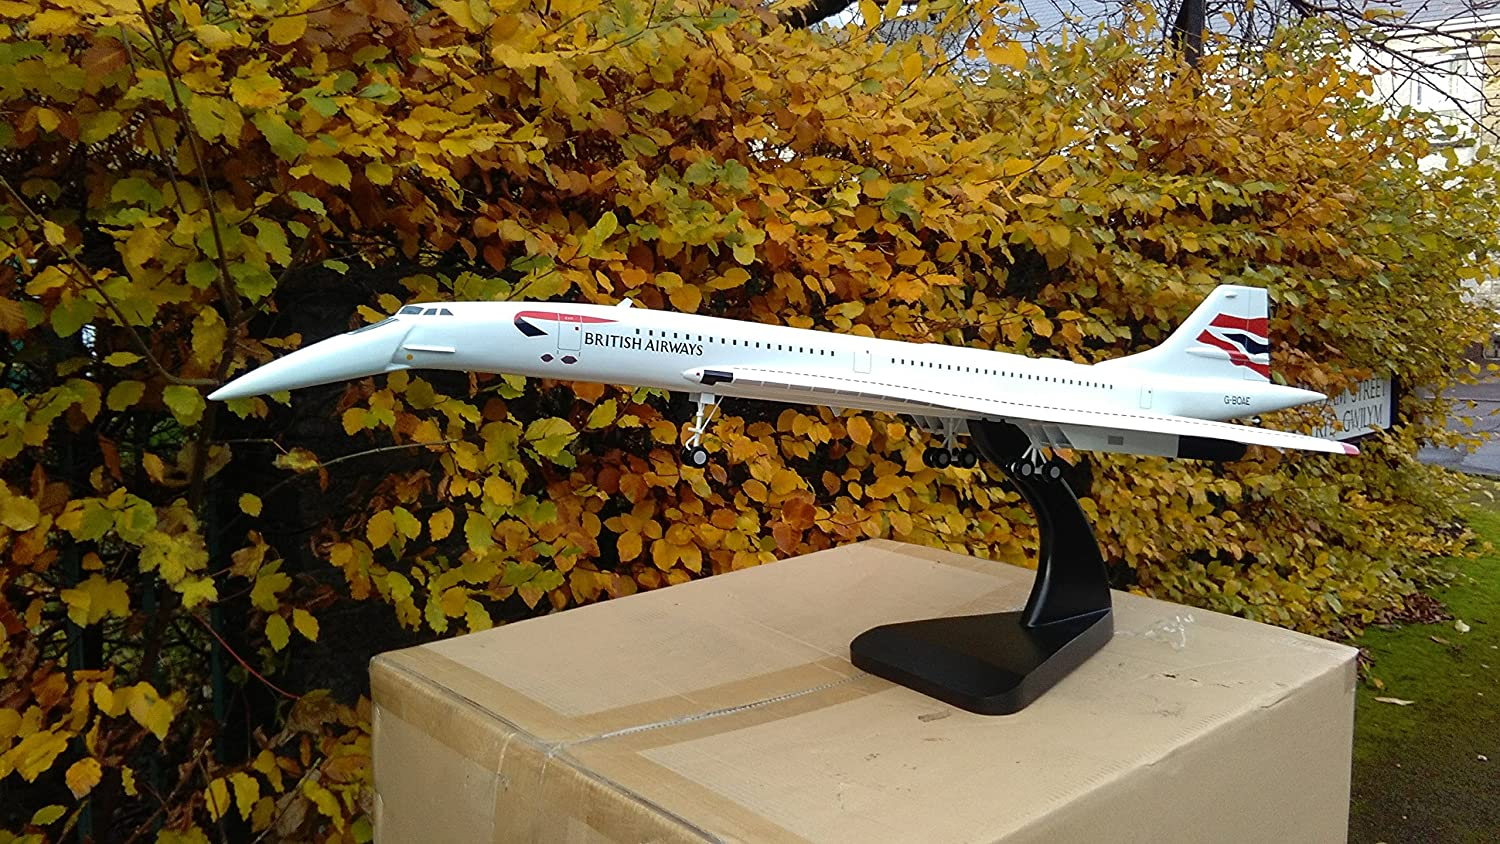 BRITISH AIRWAYS CONCORDE Mahogany Wooden Aircraft Airplane 1 50 Scale 4-ft long TRAVEL AGENT Display Collector's Model LANDING MODE Gear Nose Down BA